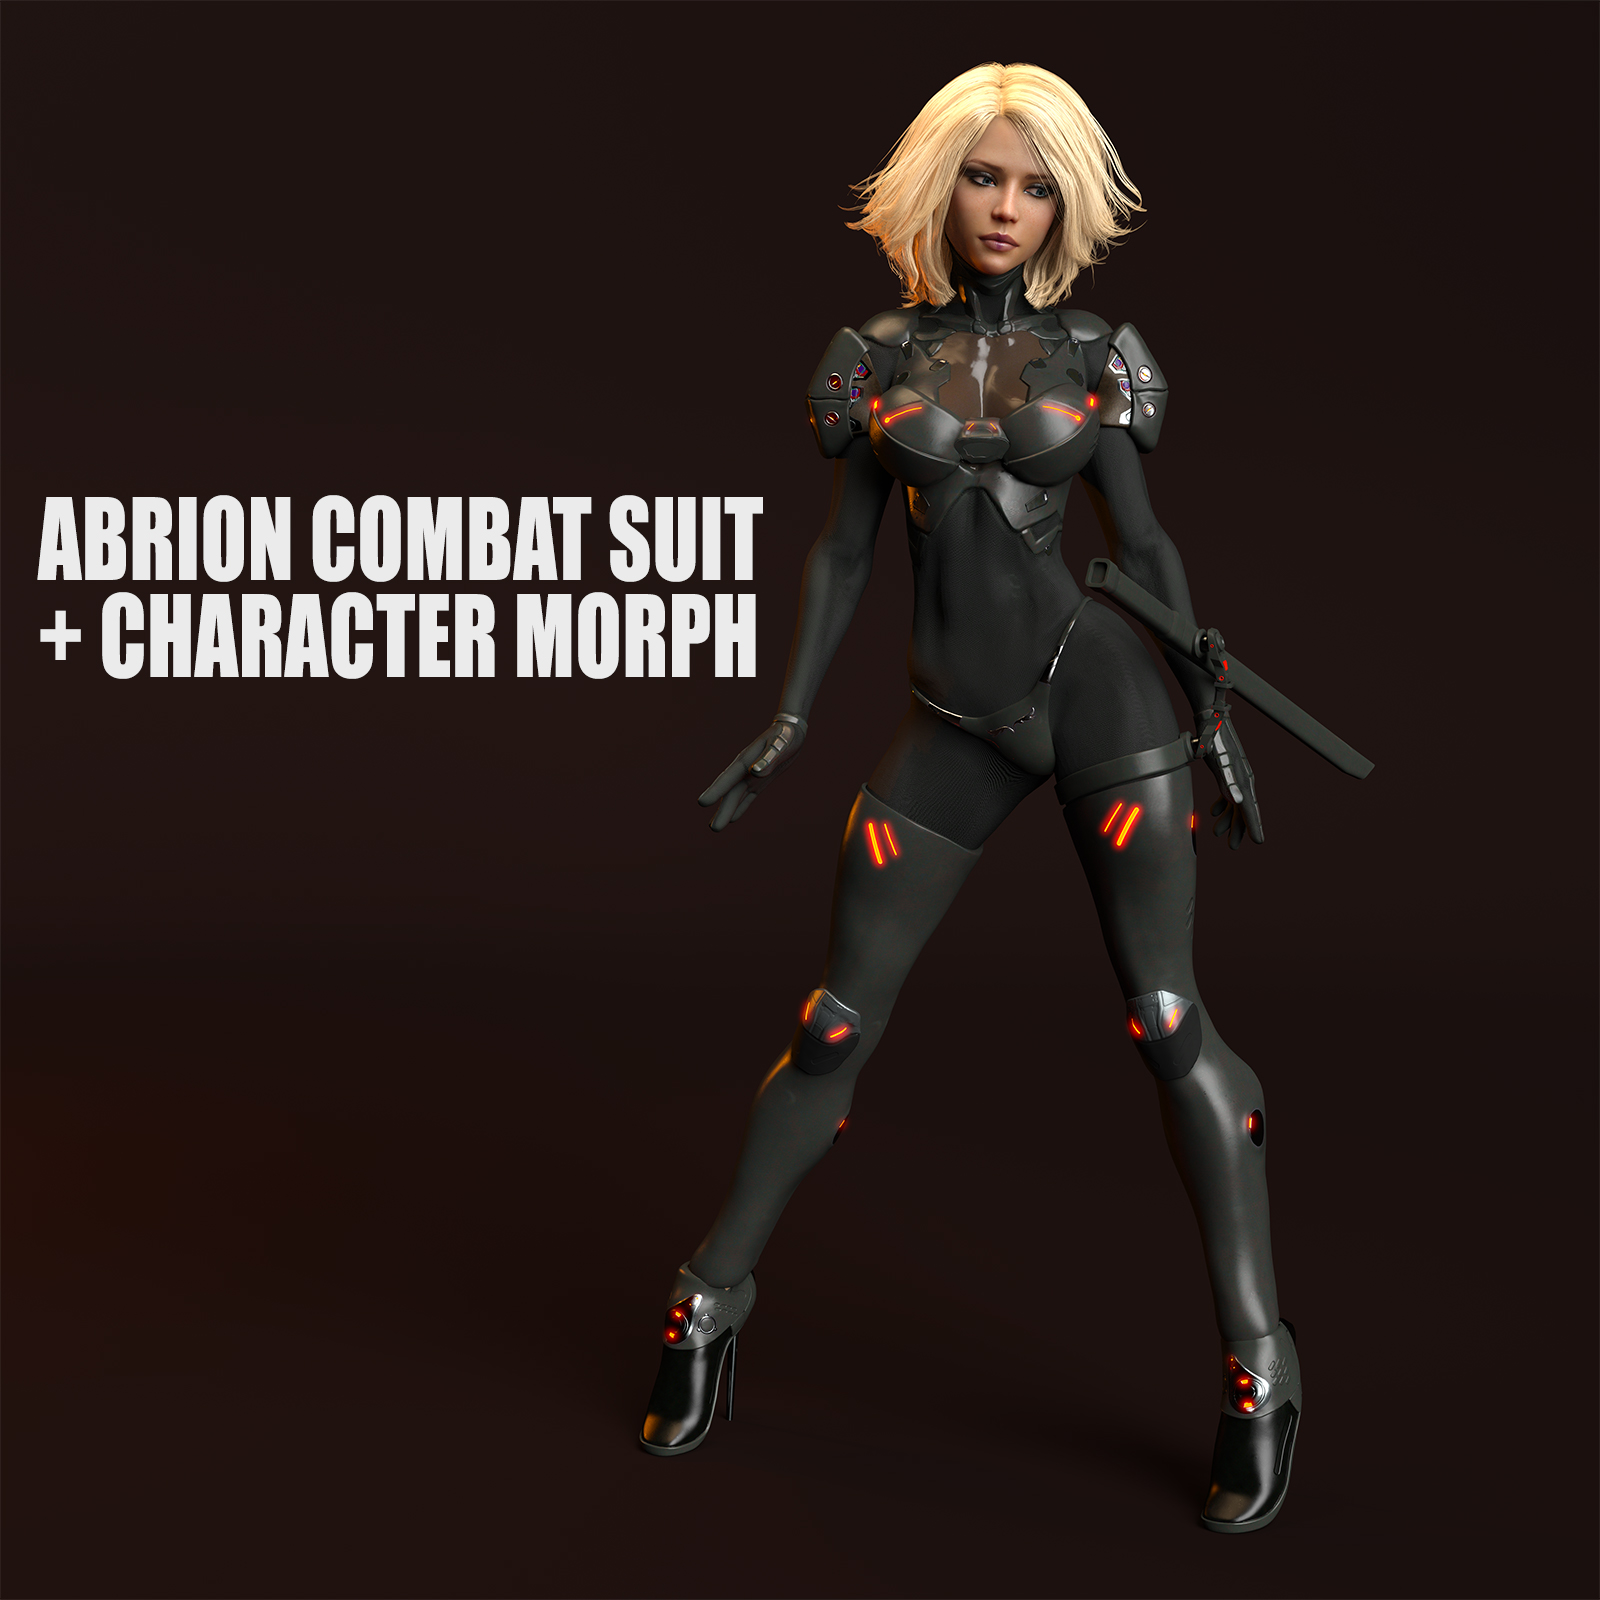 Abrion Combat Suit and Character Morph for Genesis 8 Female DAZ Studio Iray